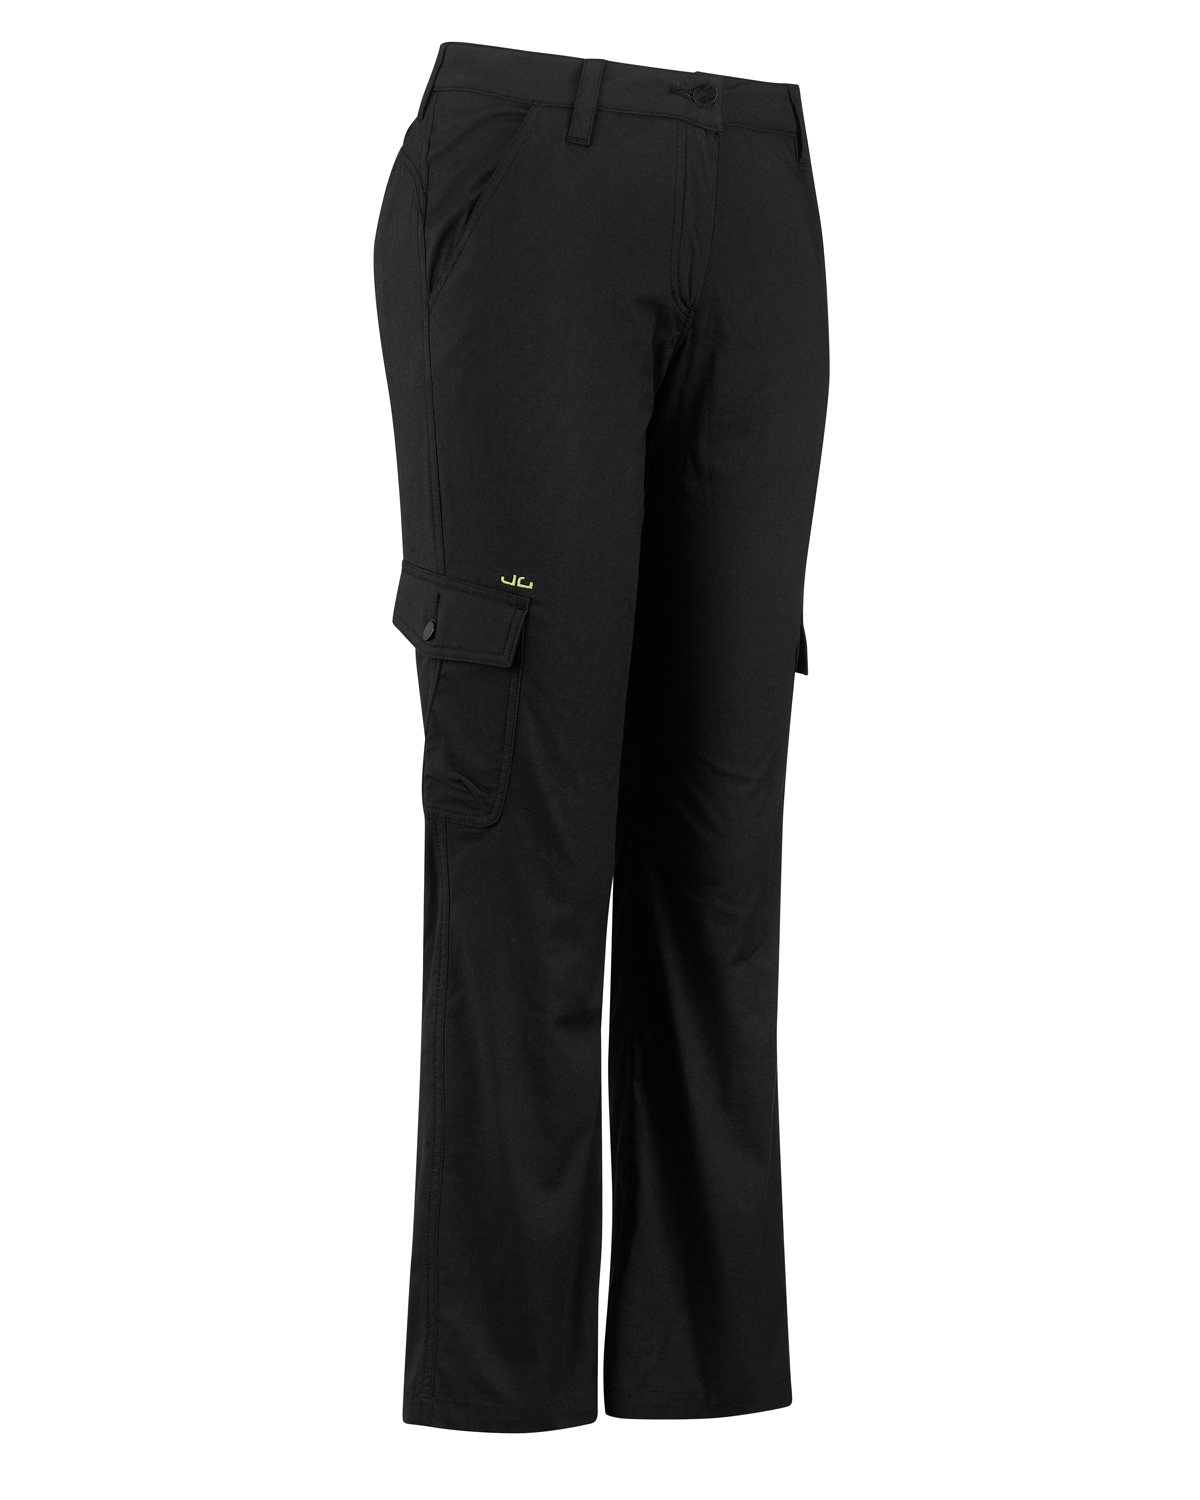 outdoorhose damen nano trekking freizeit sport walking wandern hose cargo pants ebay. Black Bedroom Furniture Sets. Home Design Ideas